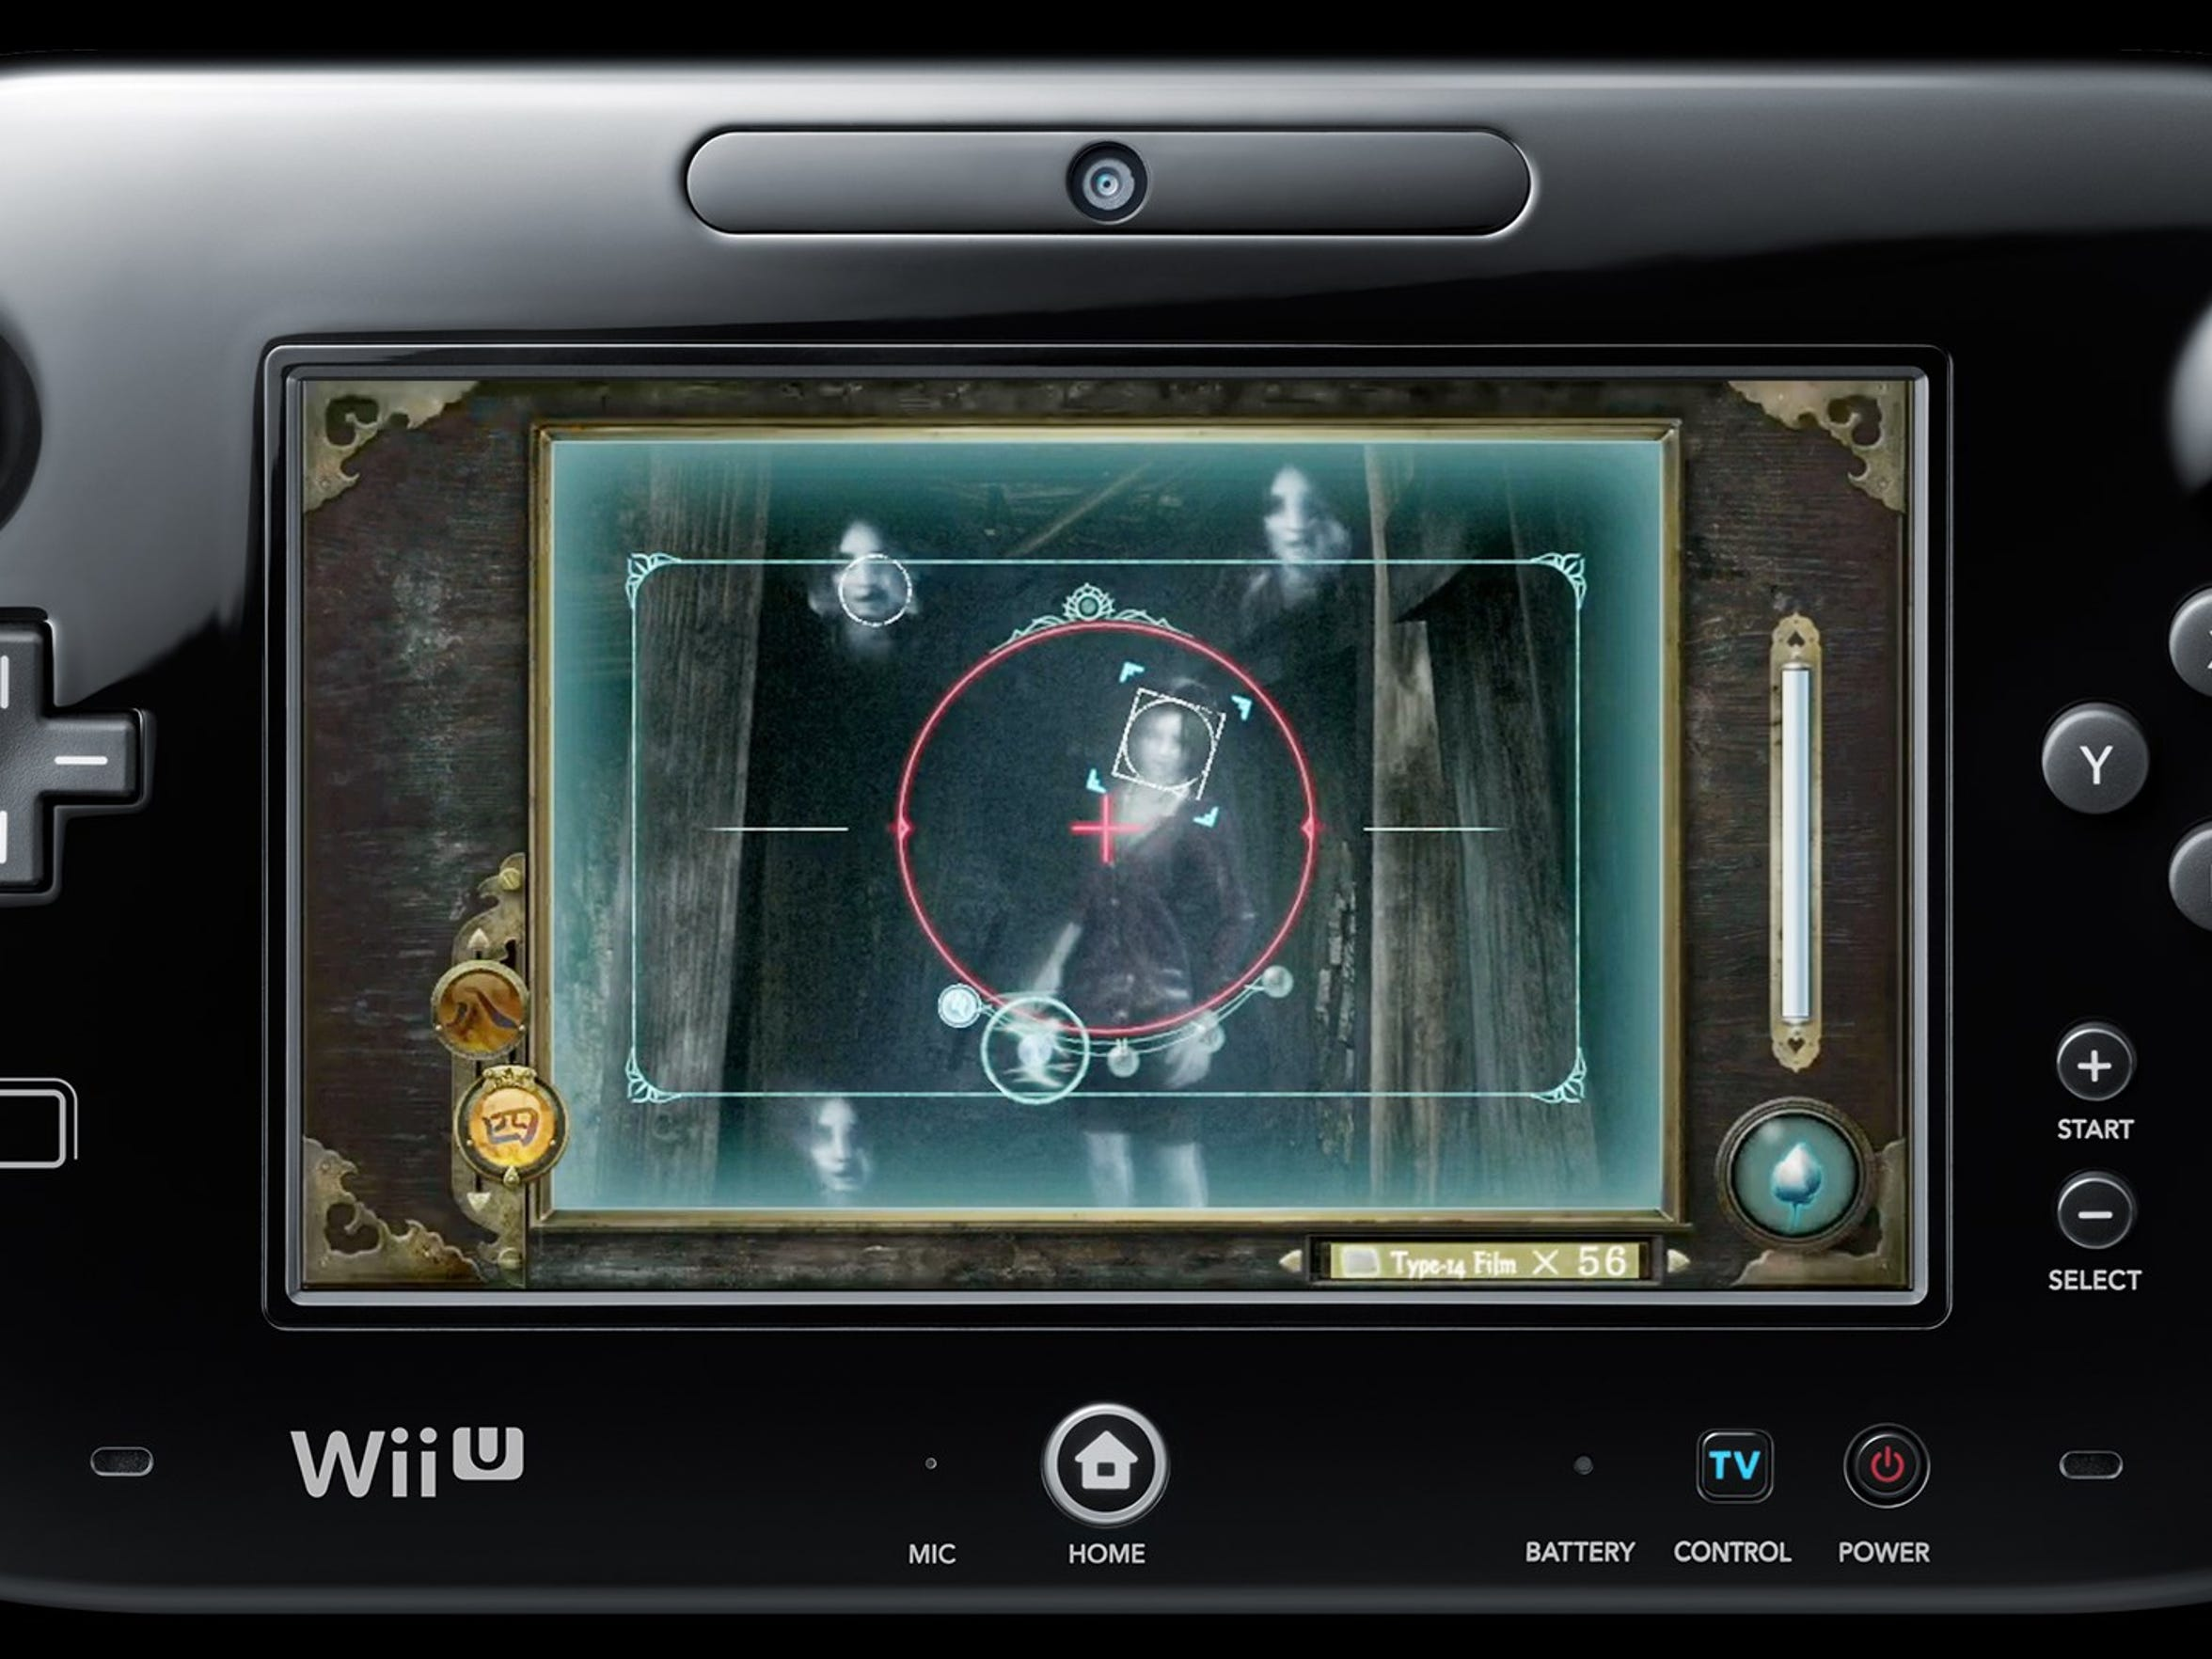 The Wii U tablet serves up the best Camera Obscura